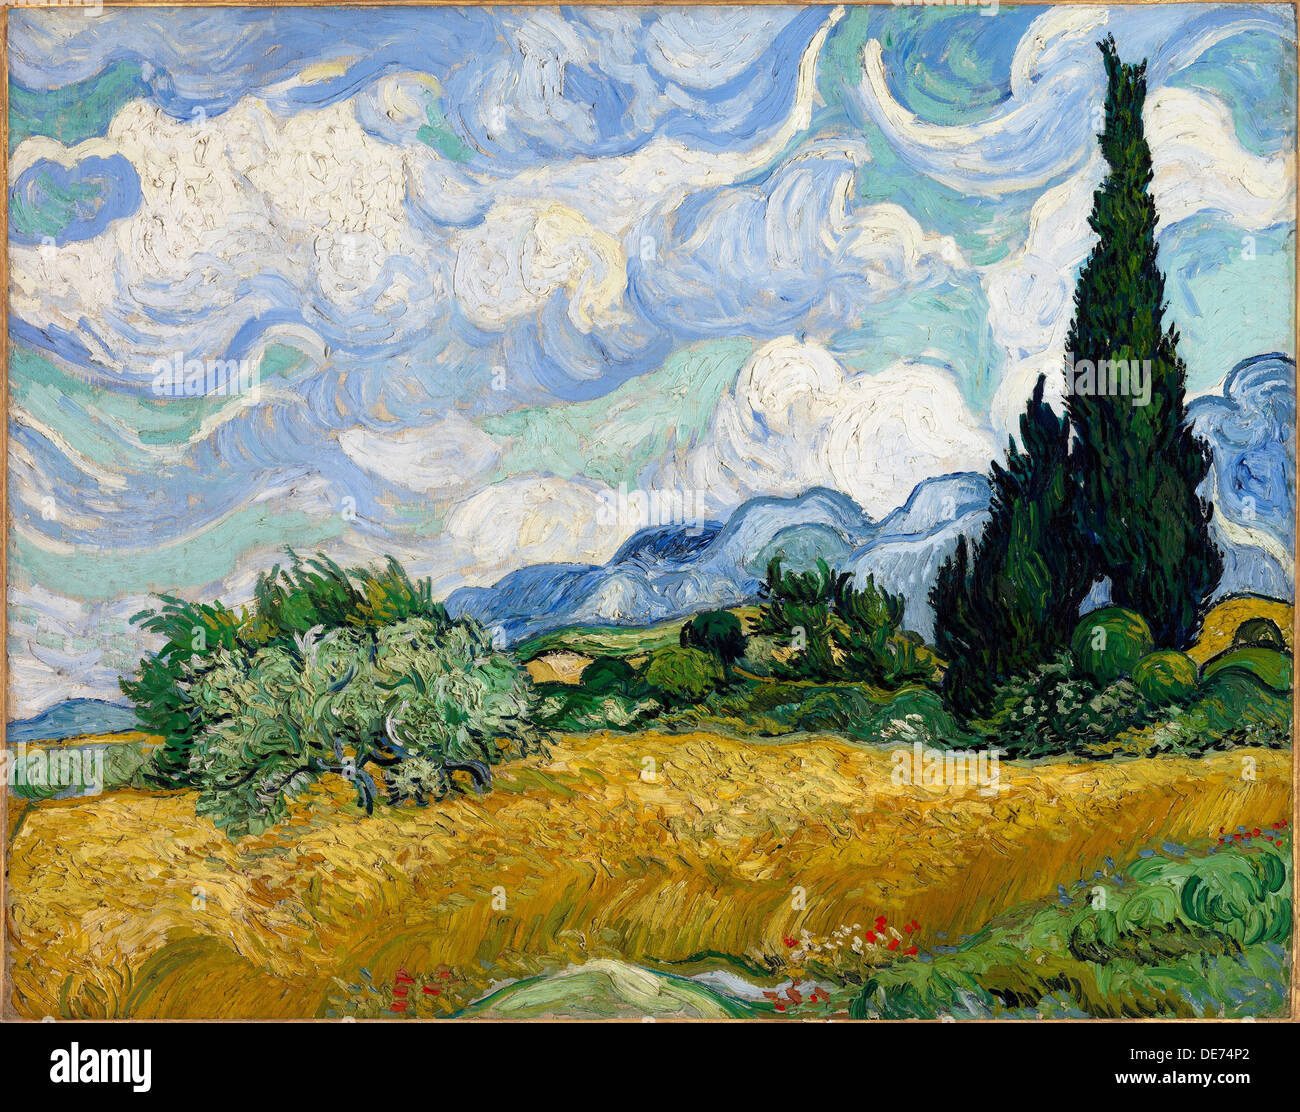 Wheat Field with Cypresses, 1889. Artist: Gogh, Vincent, van (1853-1890) - Stock Image